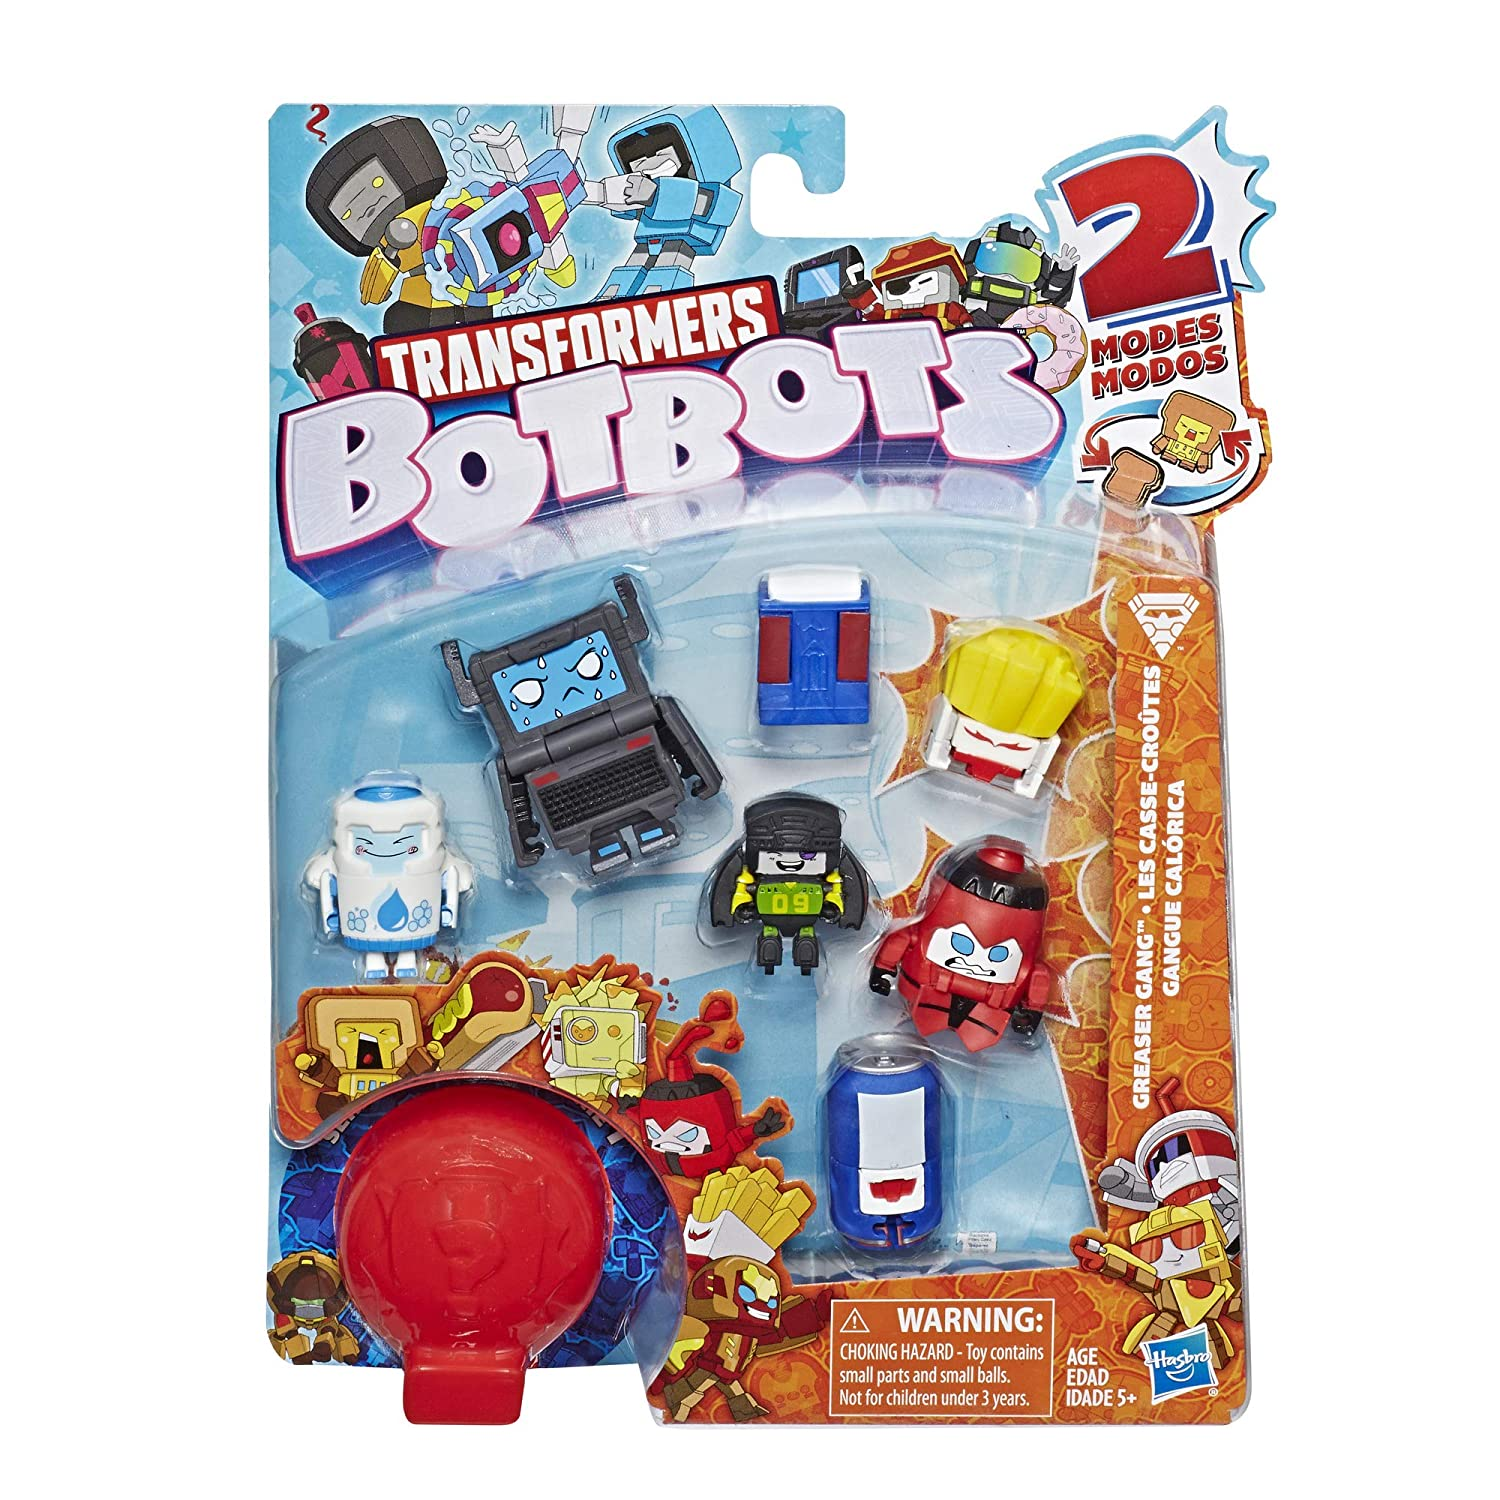 Transformers Botbots Toys Series 1 Greaser Gang 8 Pack Mystery 2 In 1 Collectible Figures